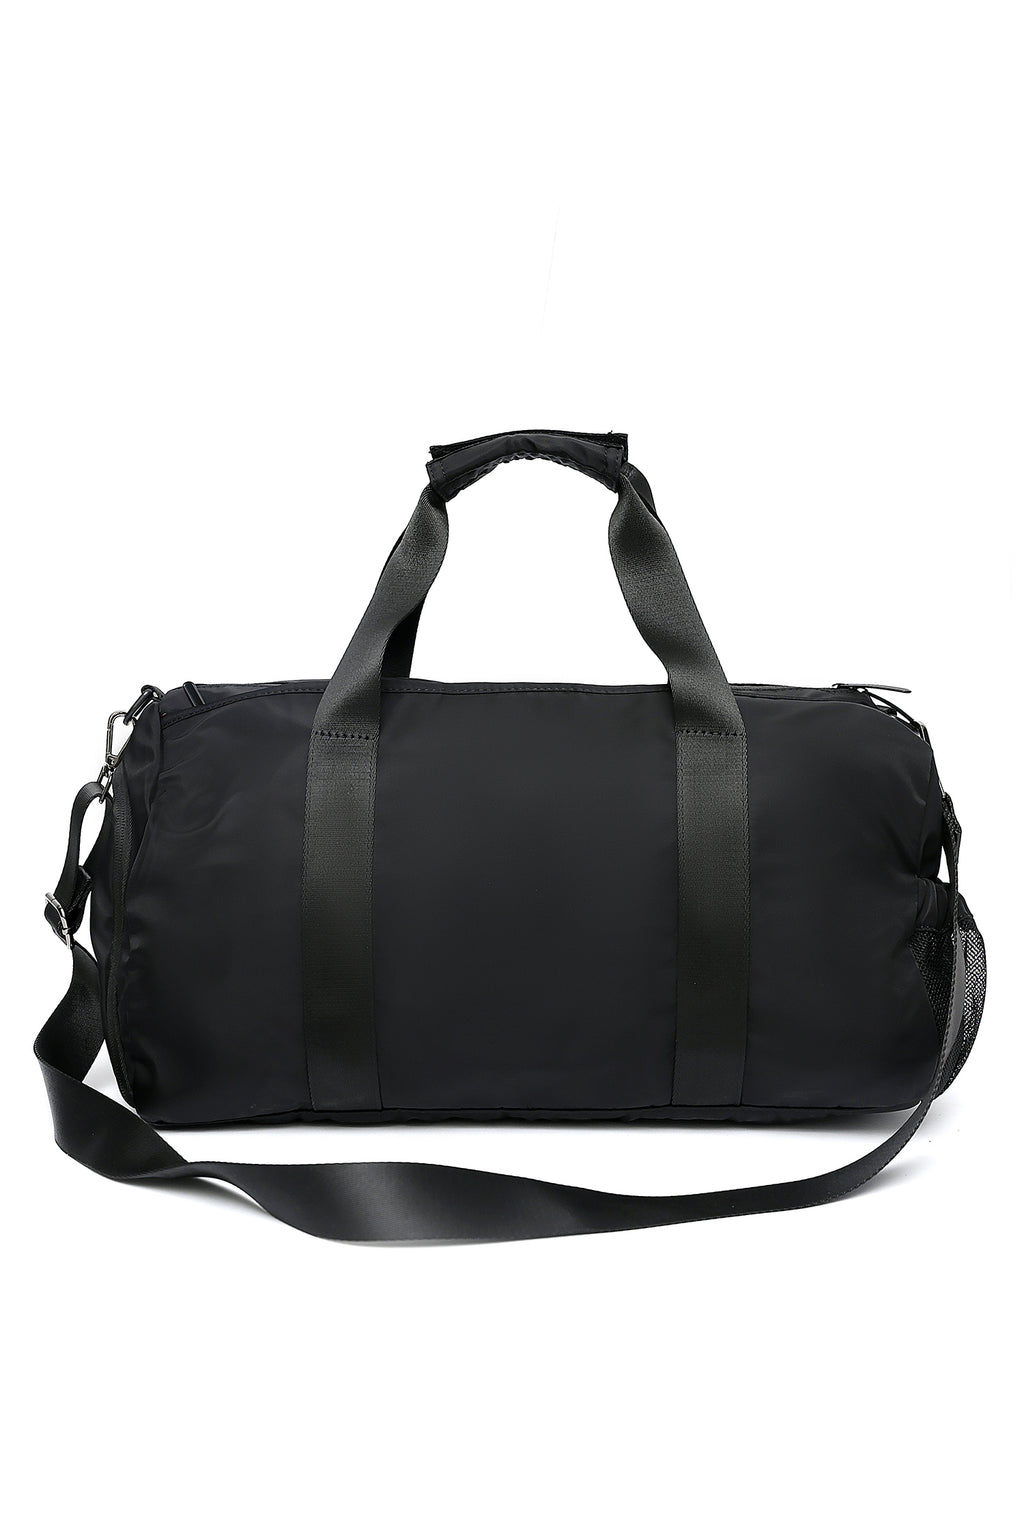 MAGIC DUFFLE-BLACK